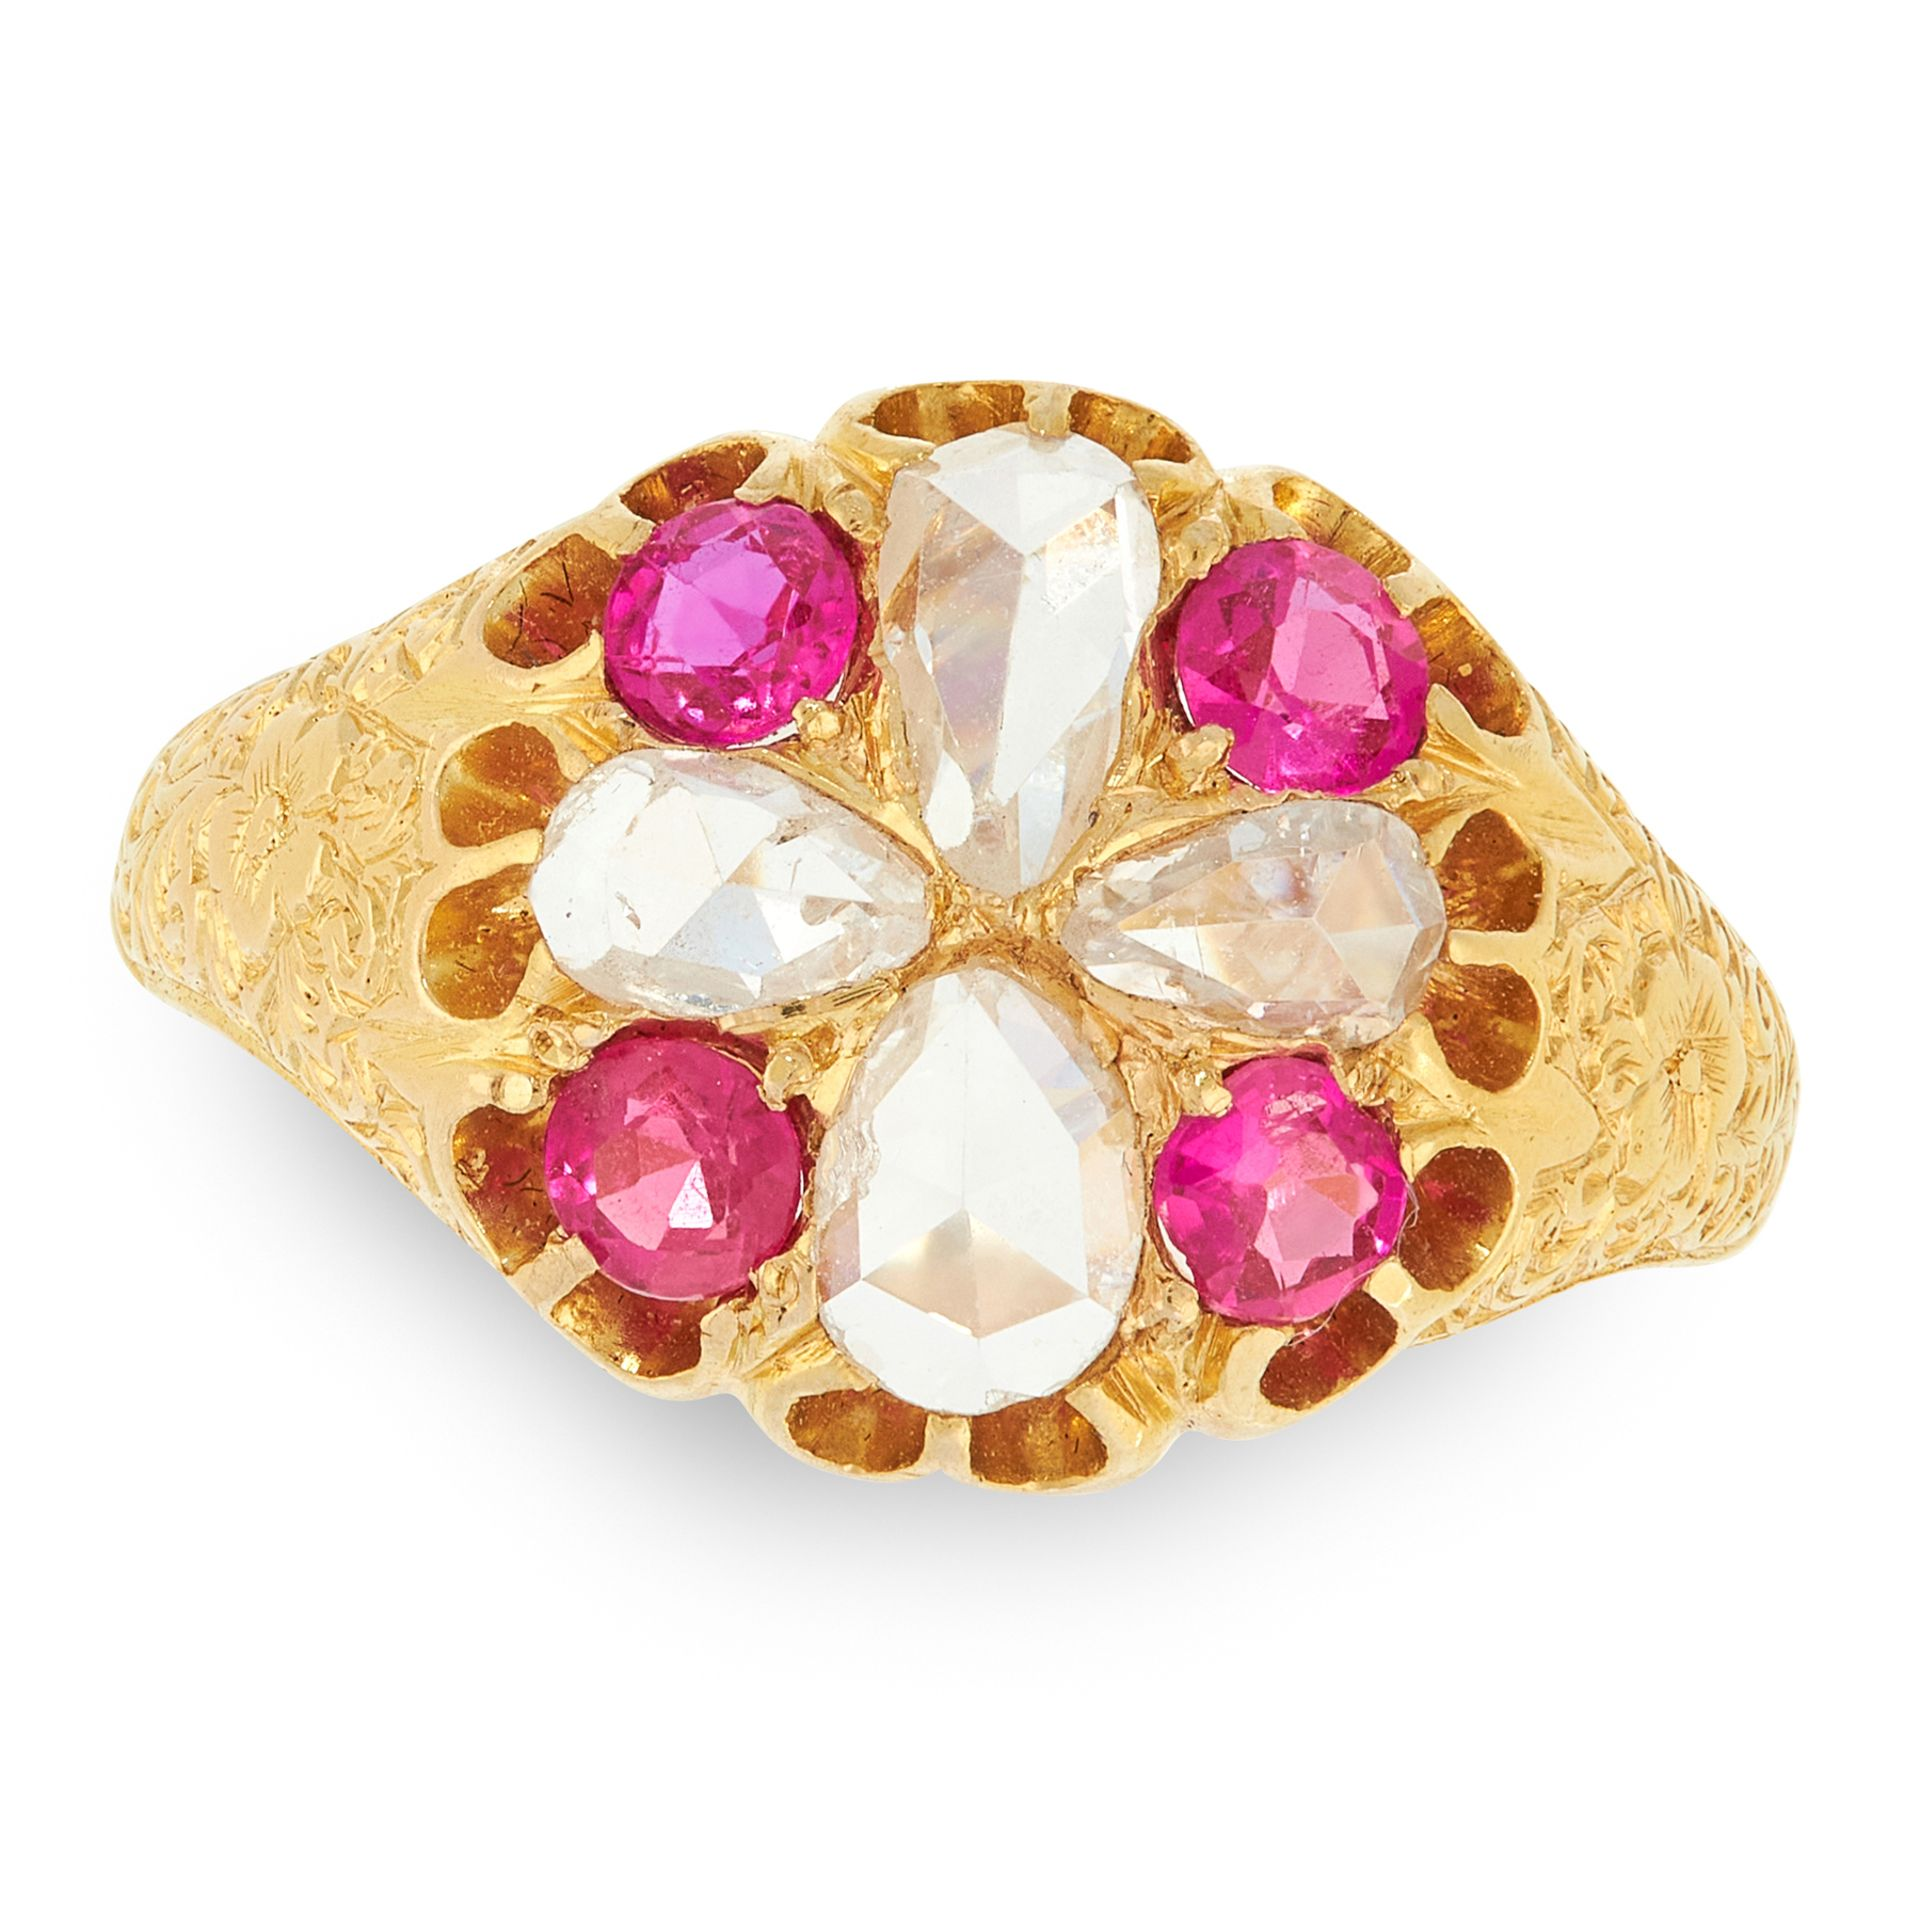 AN ANTIQUE VICTORIAN RUBY AND DIAMOND CLUSTER RING, 1883 in 18ct yellow gold, set with four pear